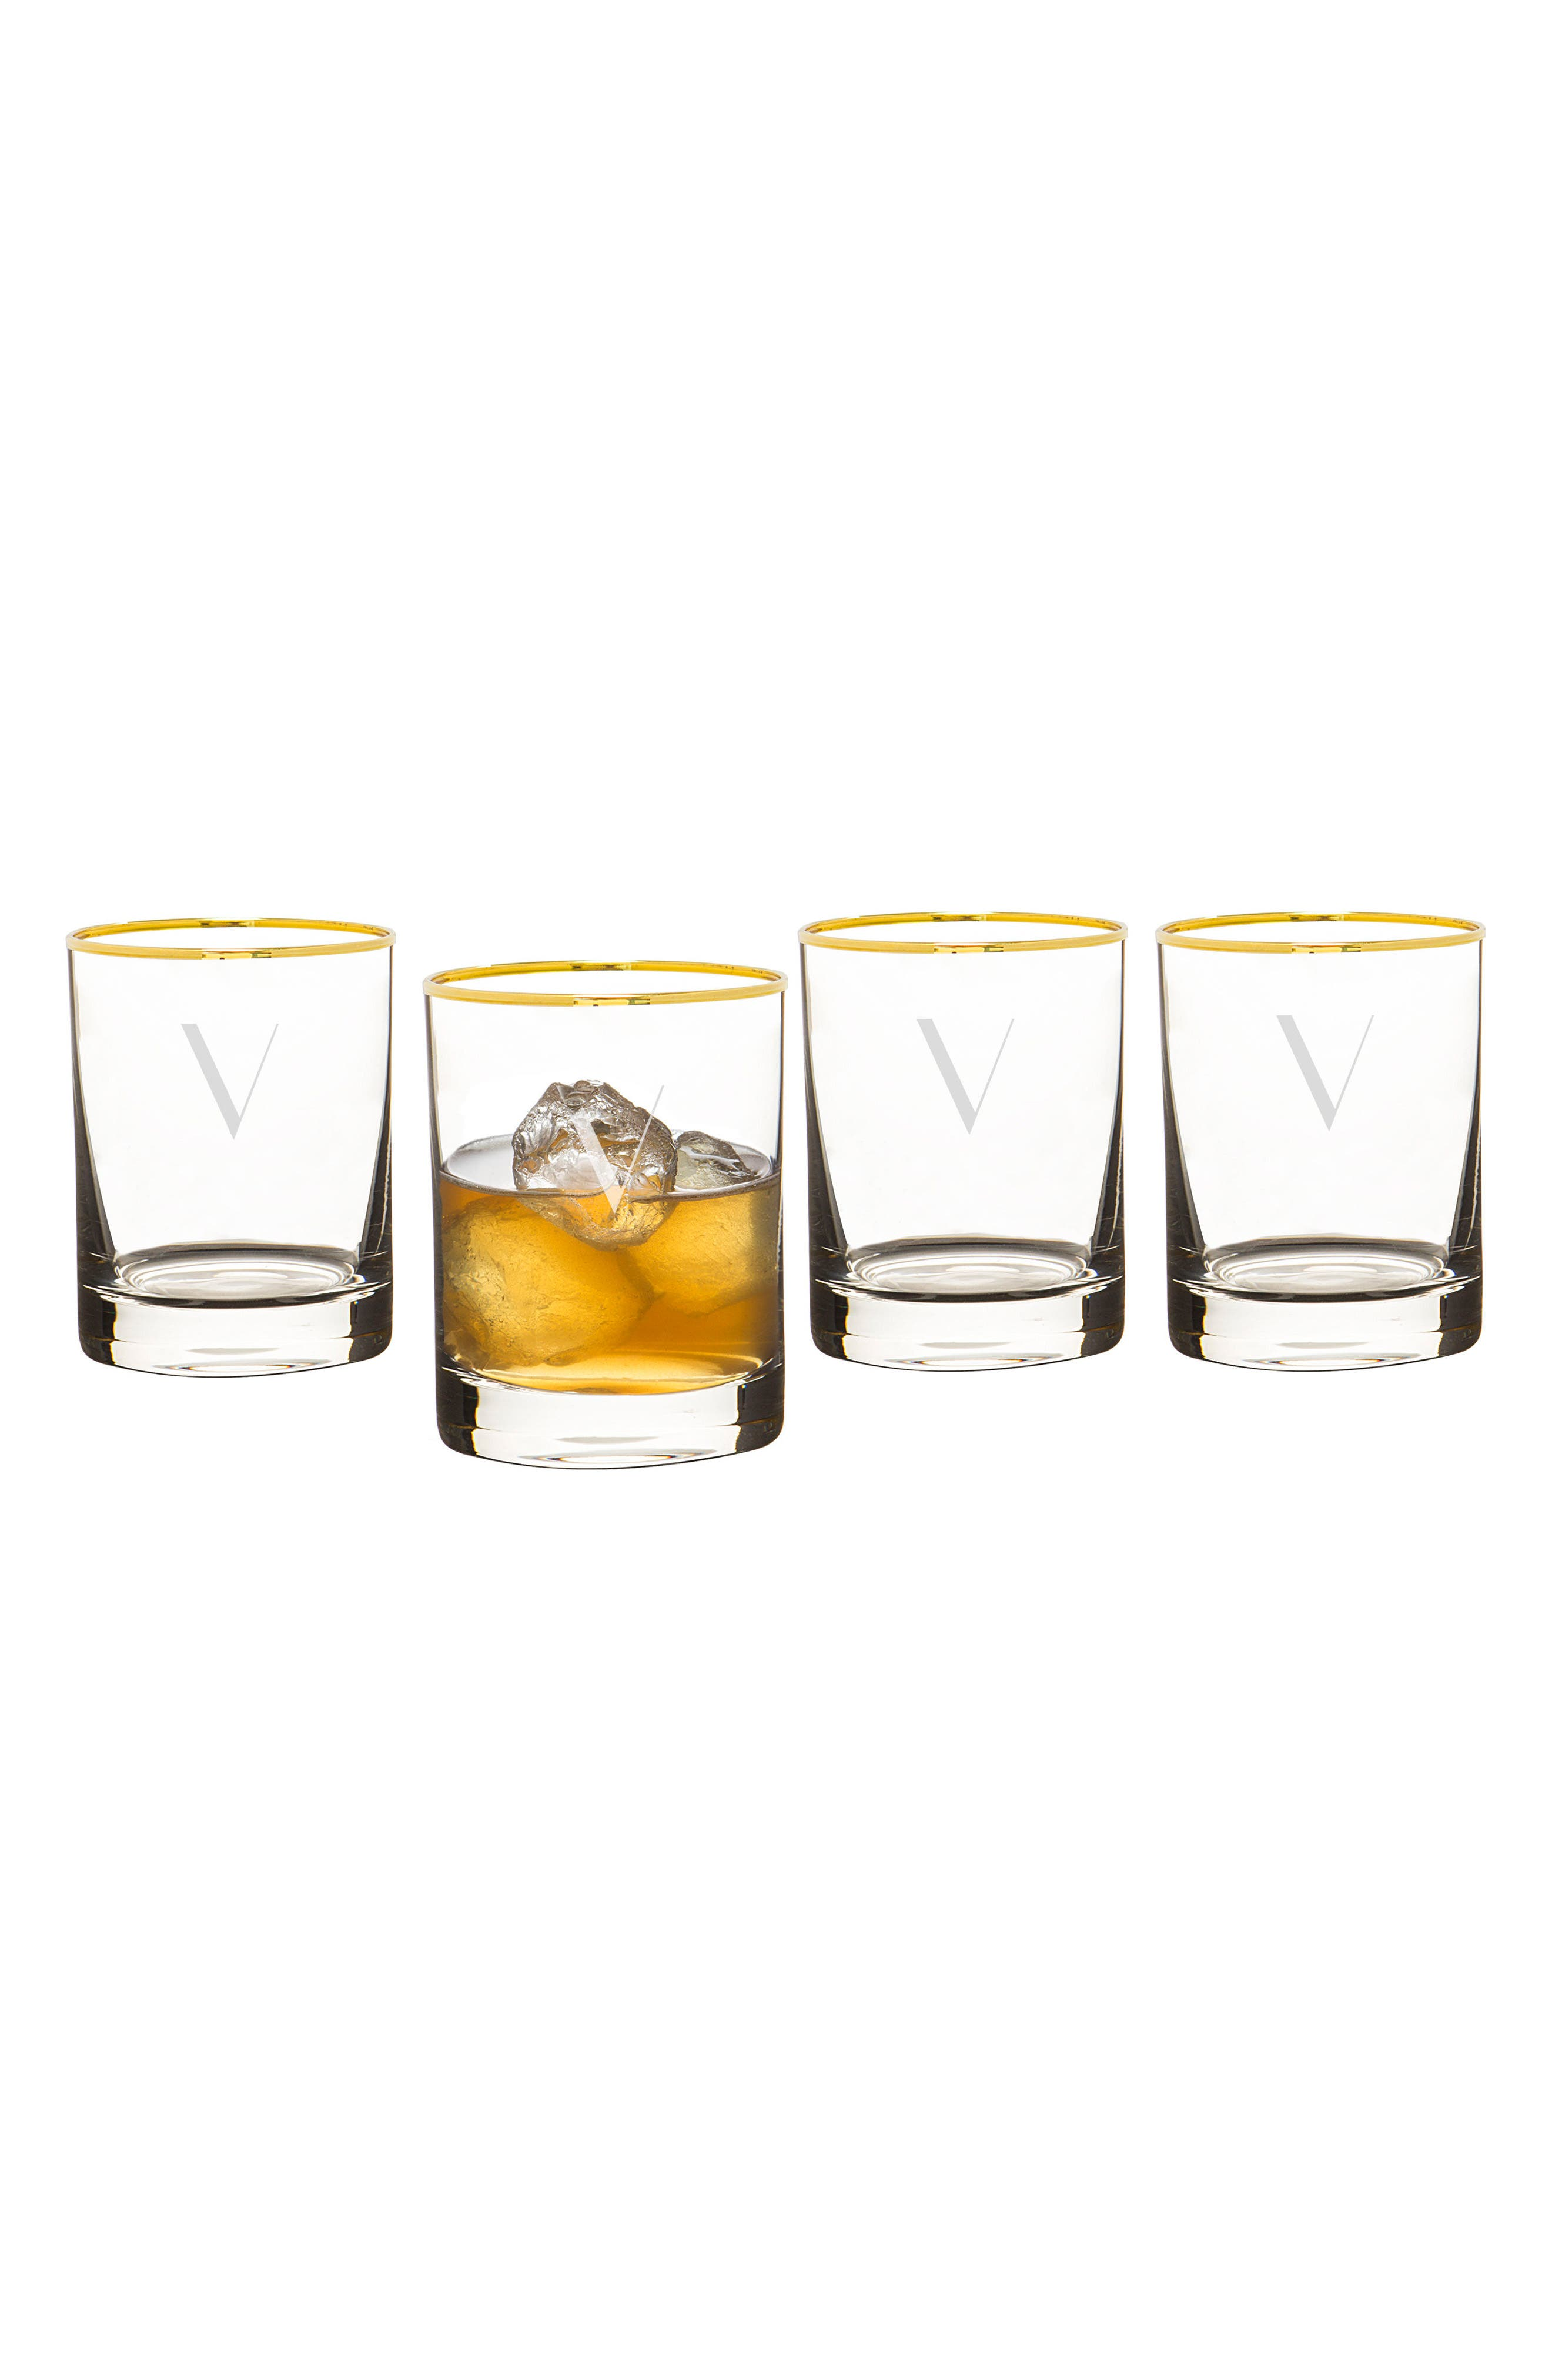 Monogram Set of 4 Double Old Fashioned Glasses,                             Main thumbnail 22, color,